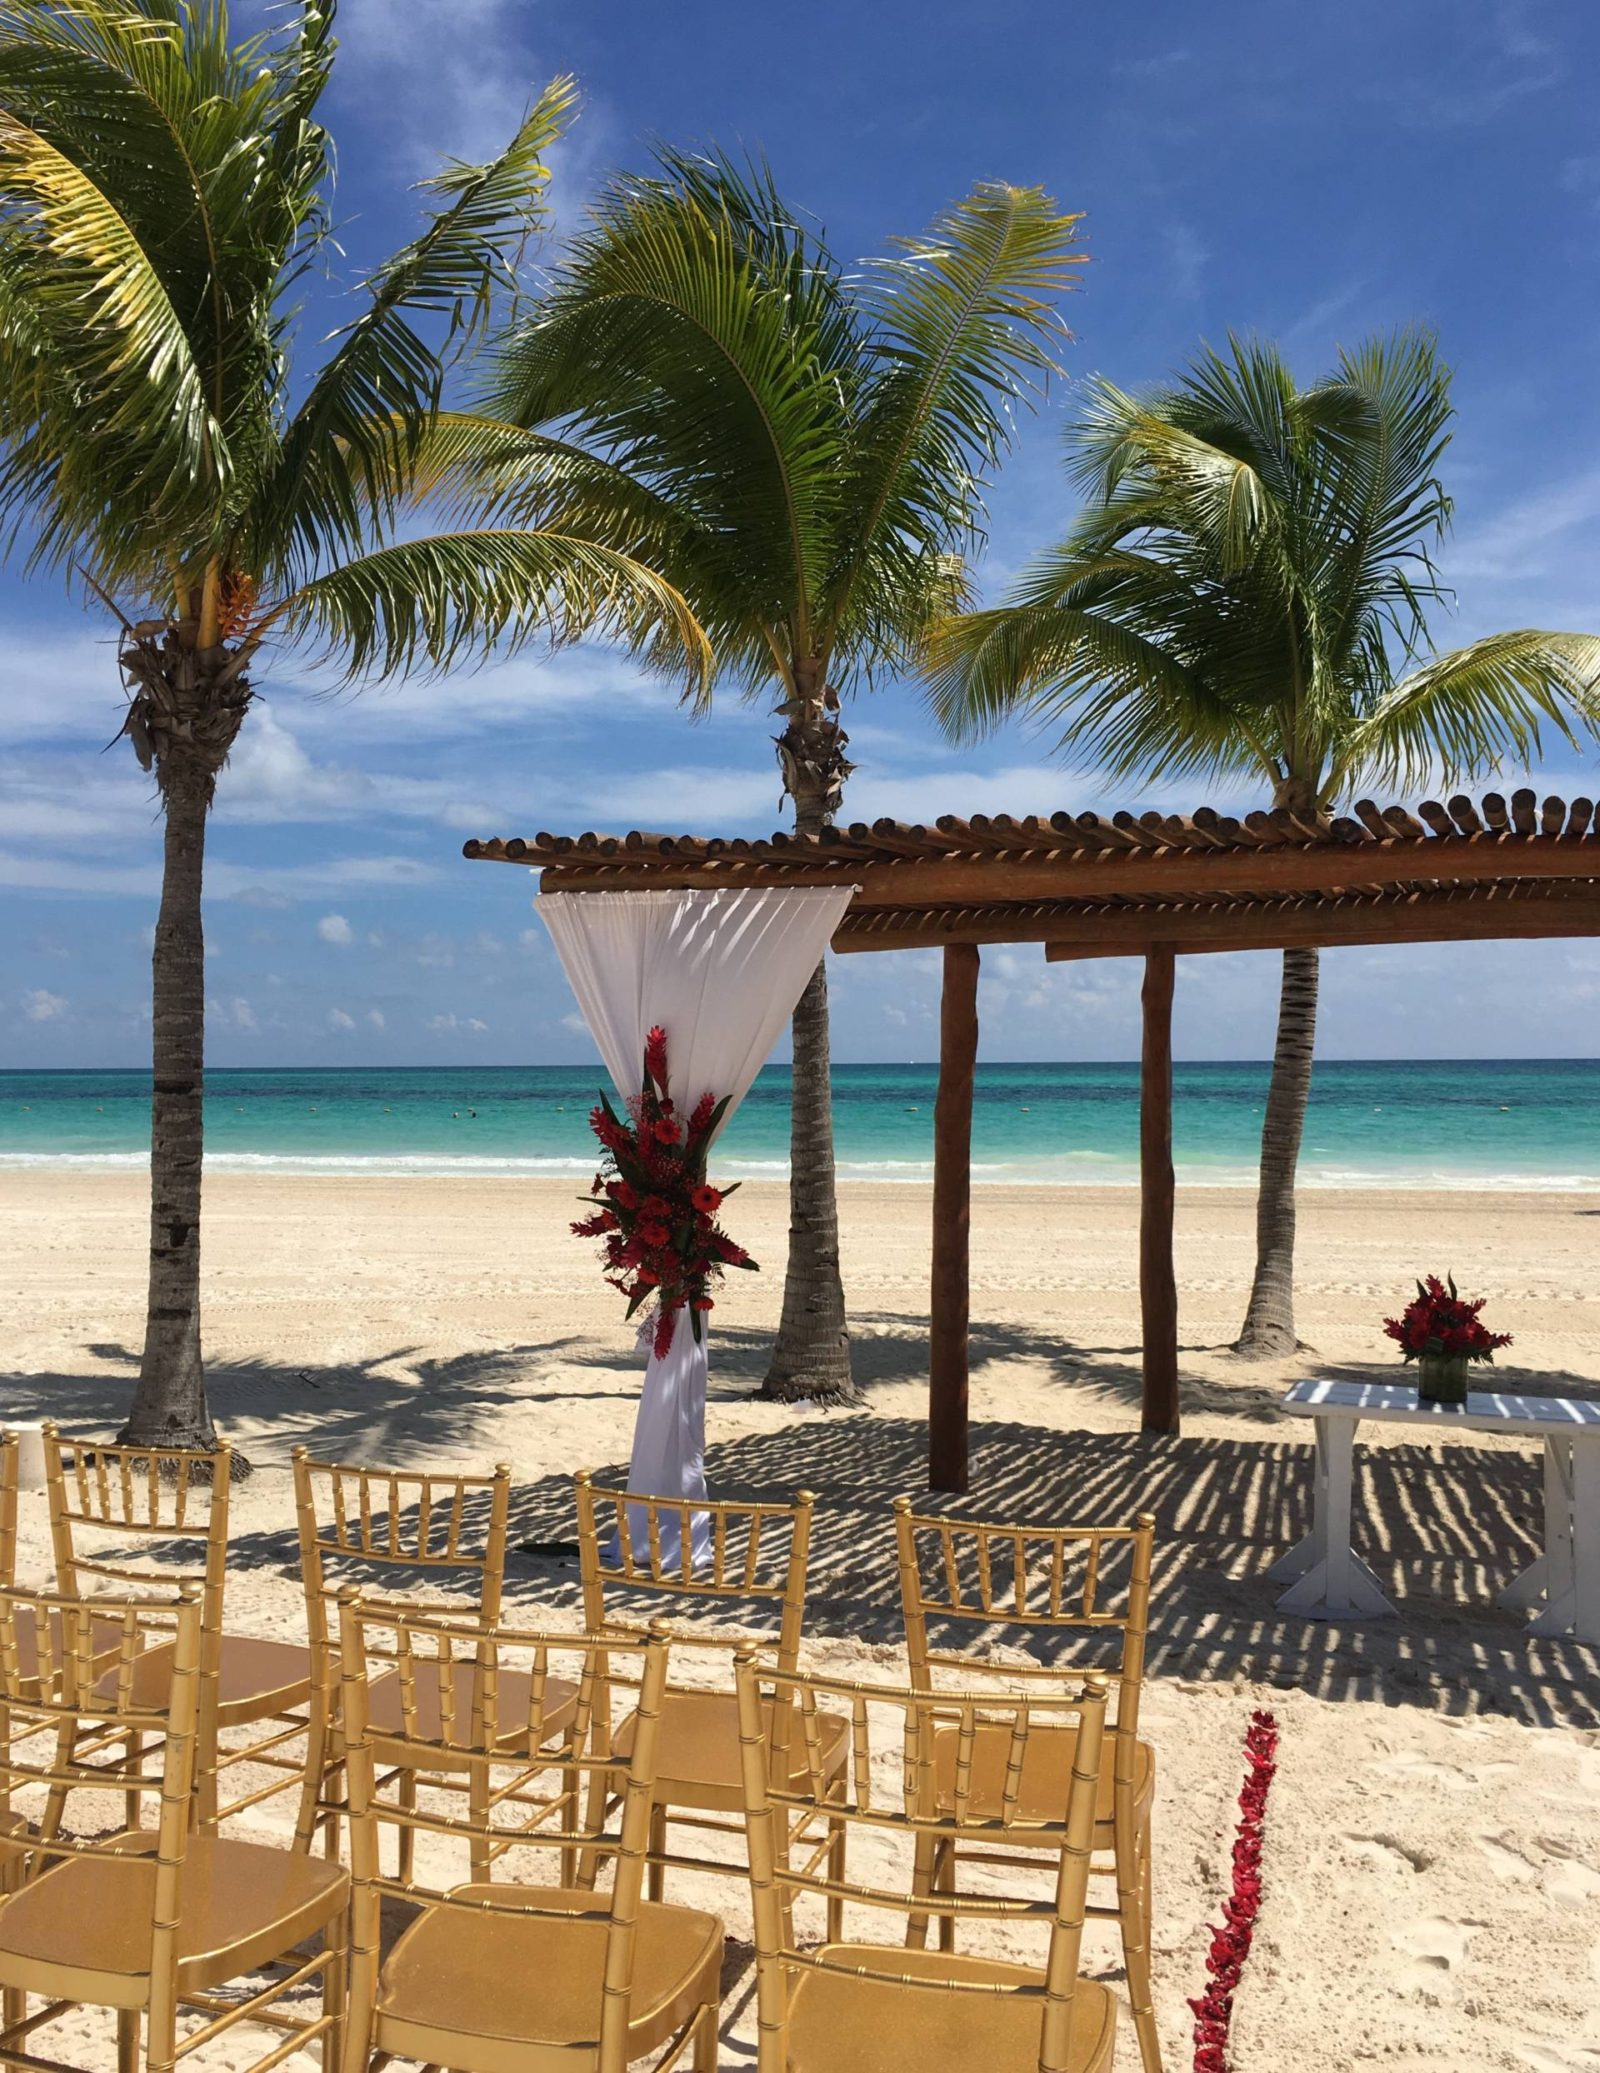 Top Ten: Reasons to have a Destination Wedding